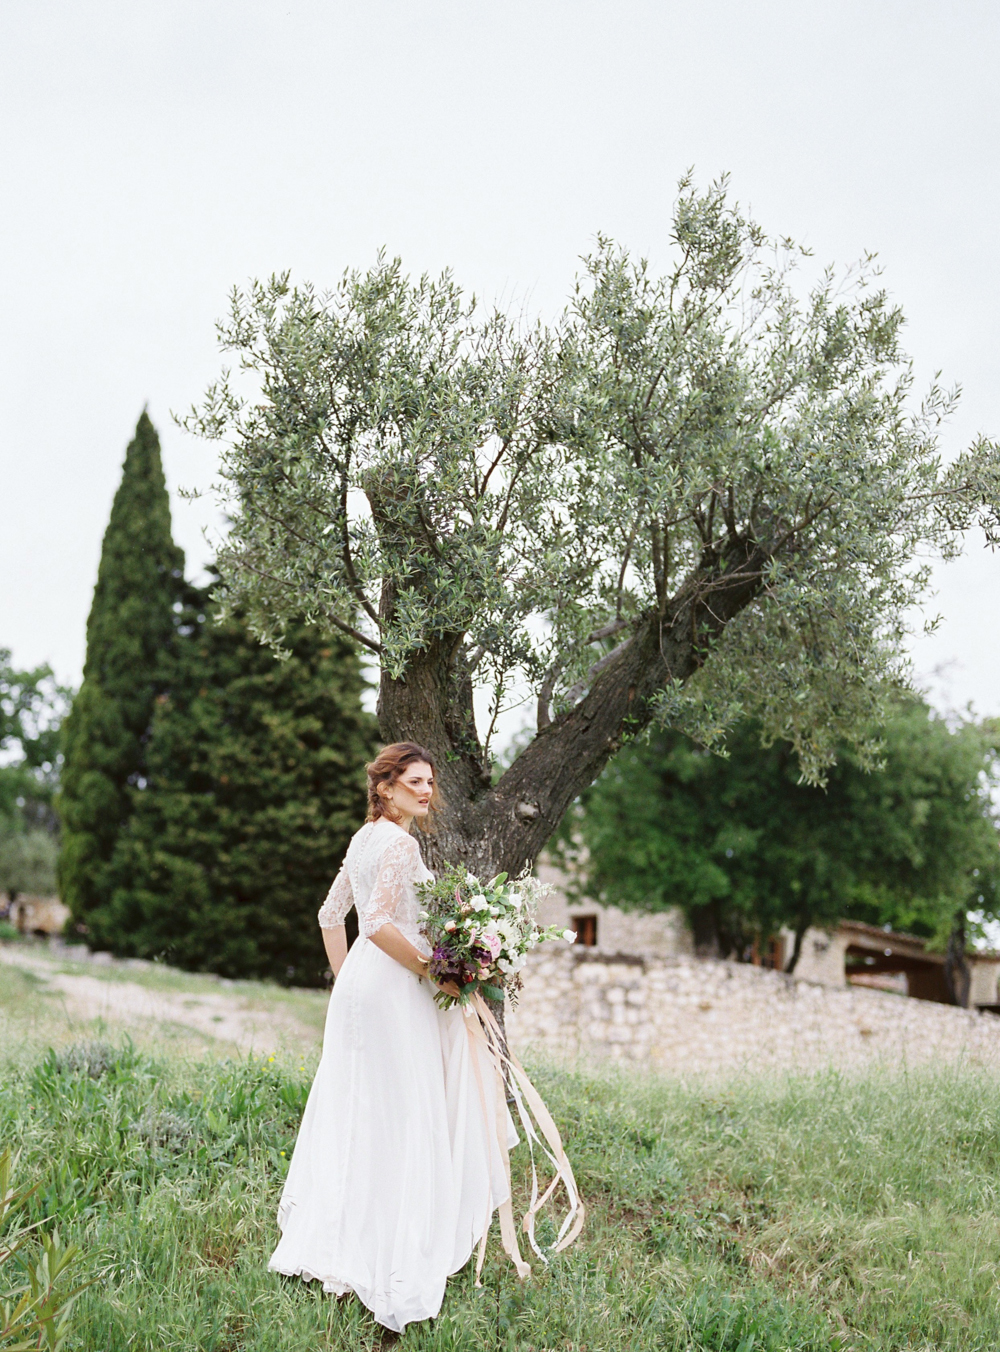 celine_chhuon_photography_provence_wedding_domaine_grillons-1.jpg